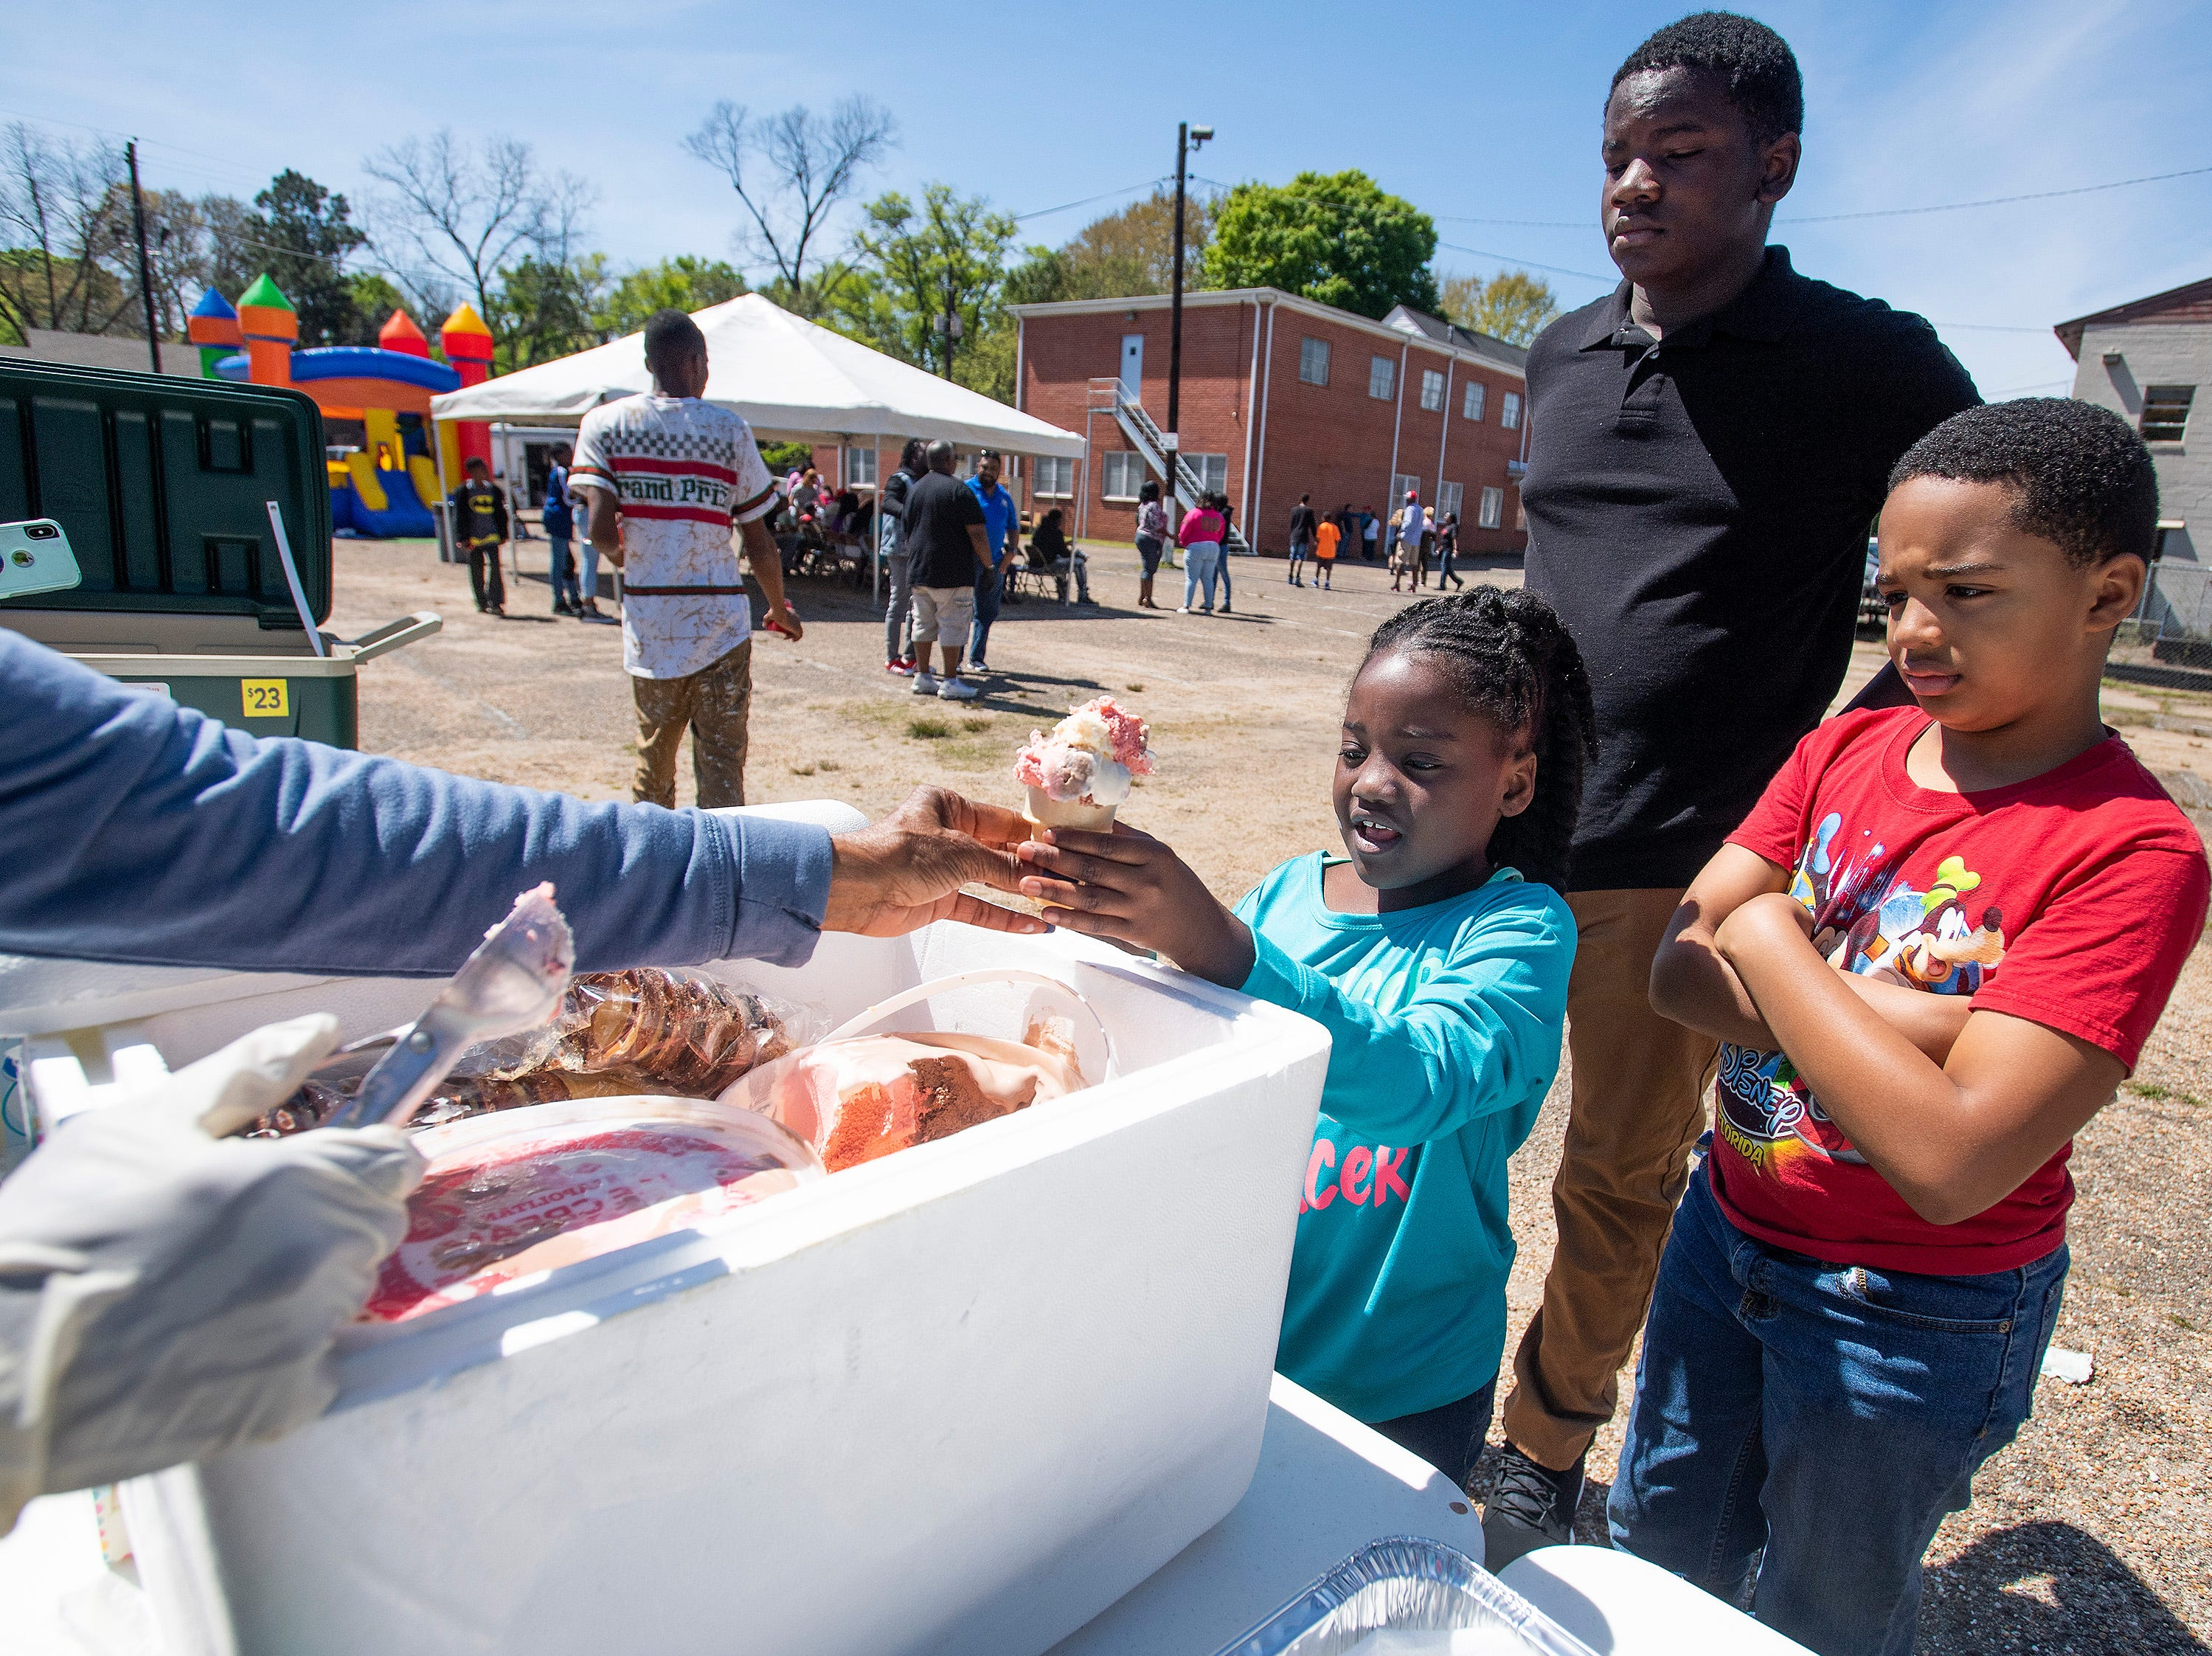 Ice cream is served as Flatline Church hosts a block party for the Chisholm neighborhood in Montgomery, Ala., on Saturday March 23, 2019.